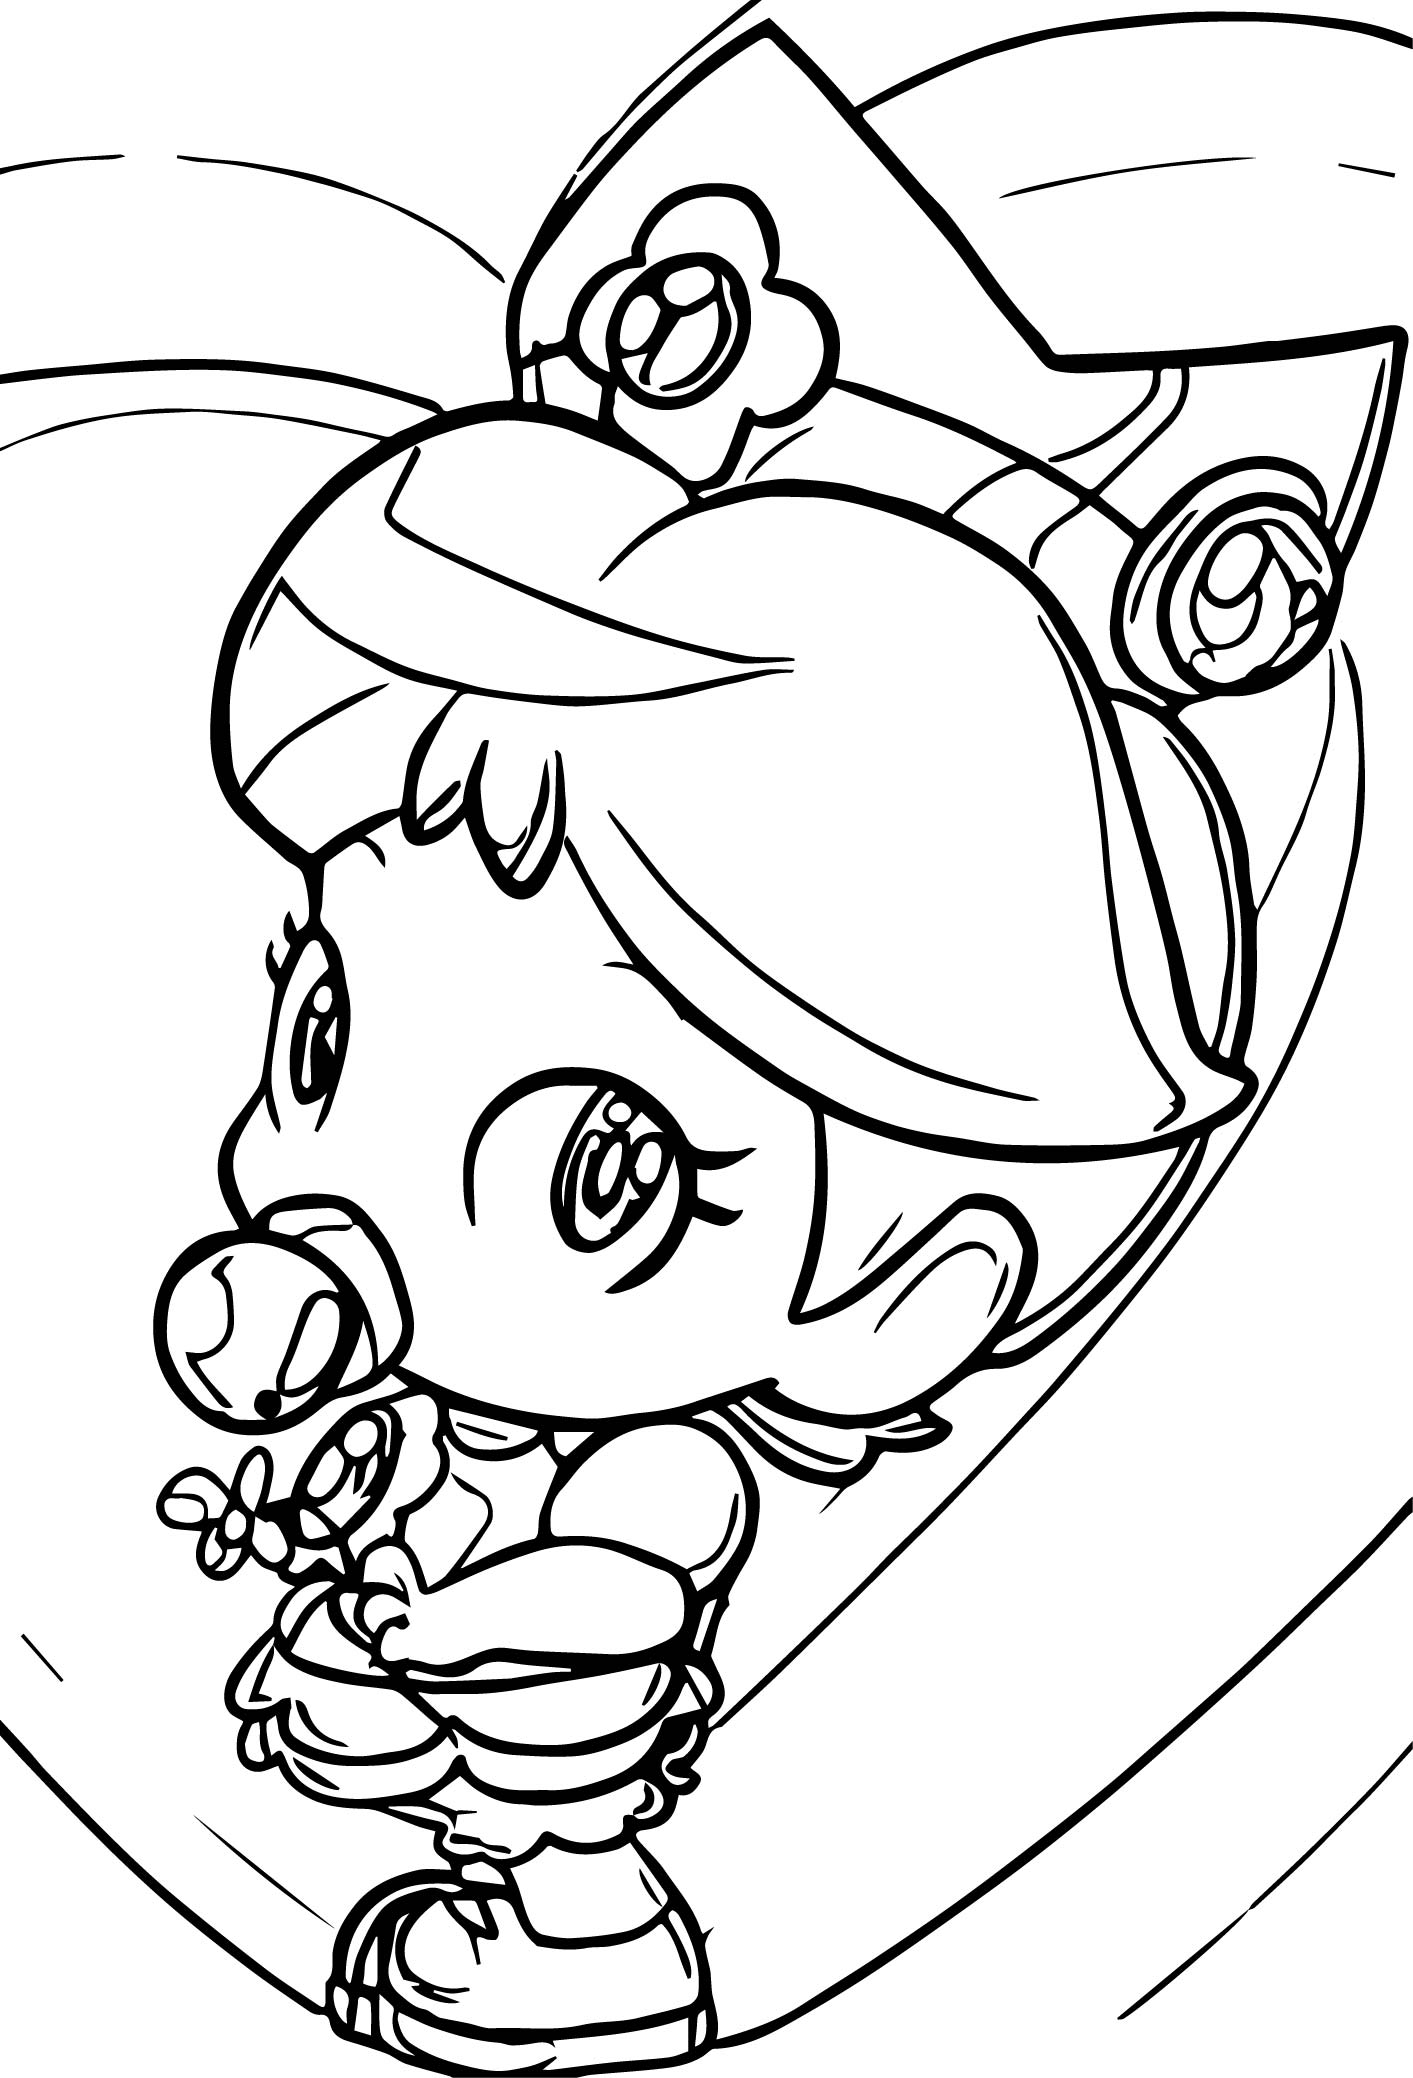 Draw Baby Daisy Coloring Page